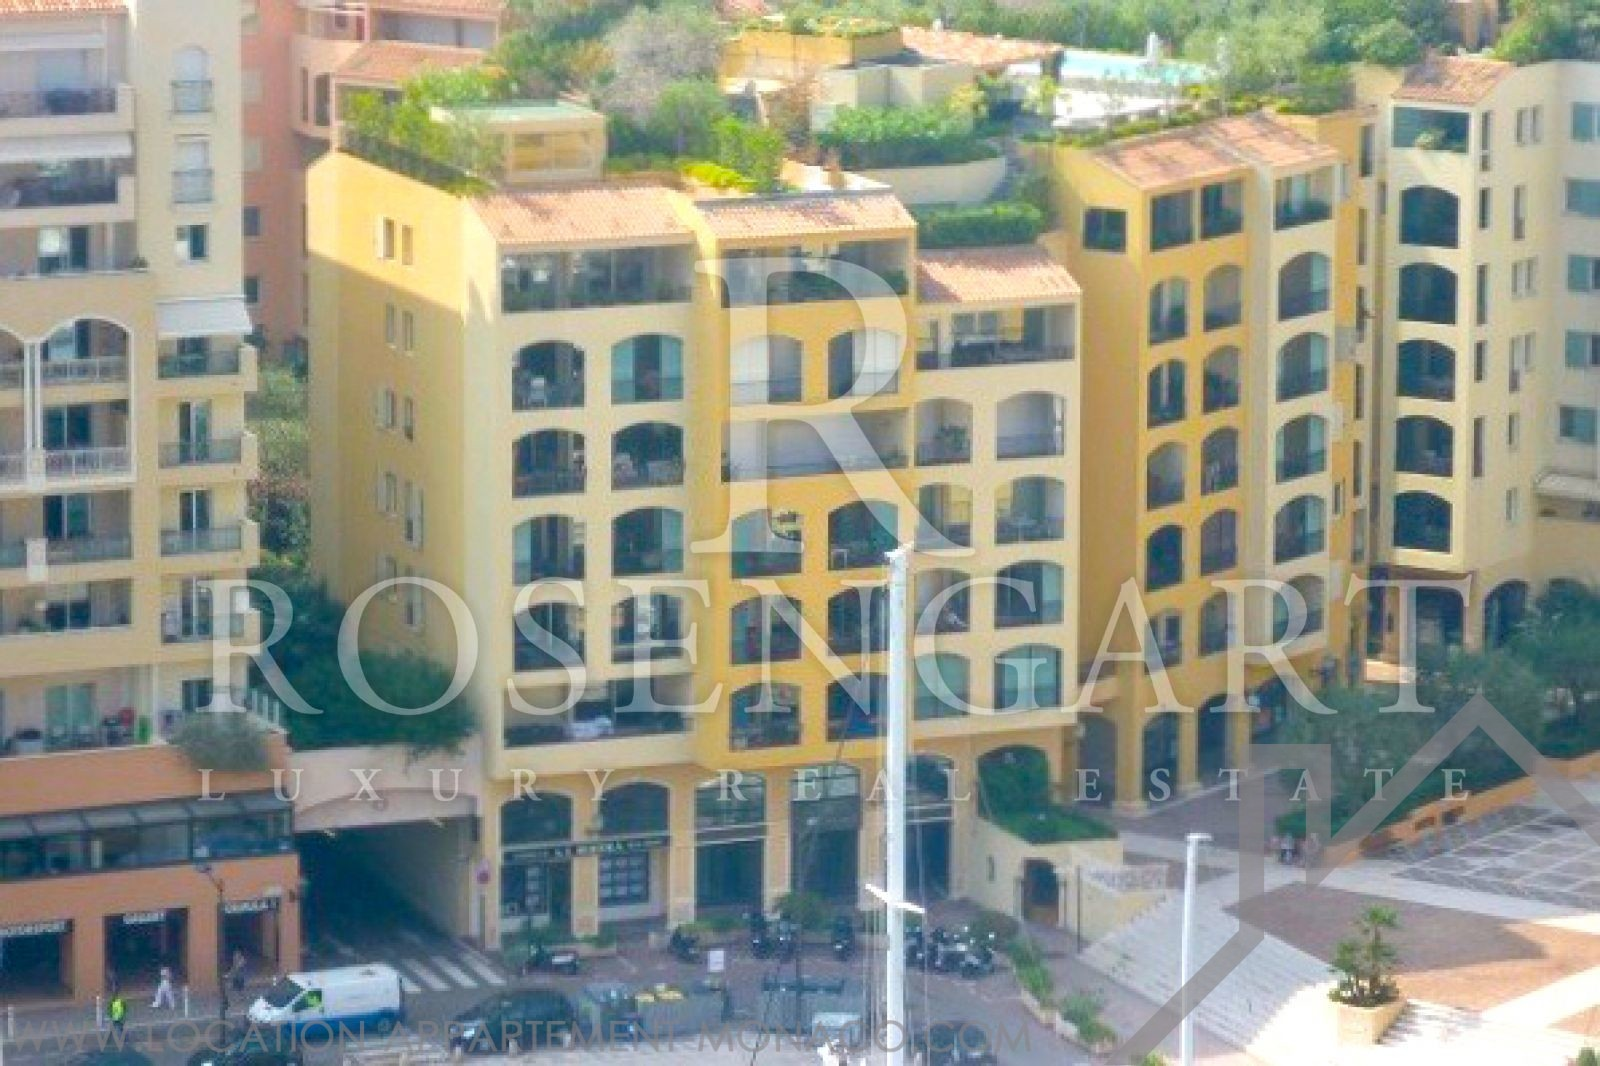 2 Room Apartment at the Leisure Harbour, Mantegna - Apartments for rent in Monaco